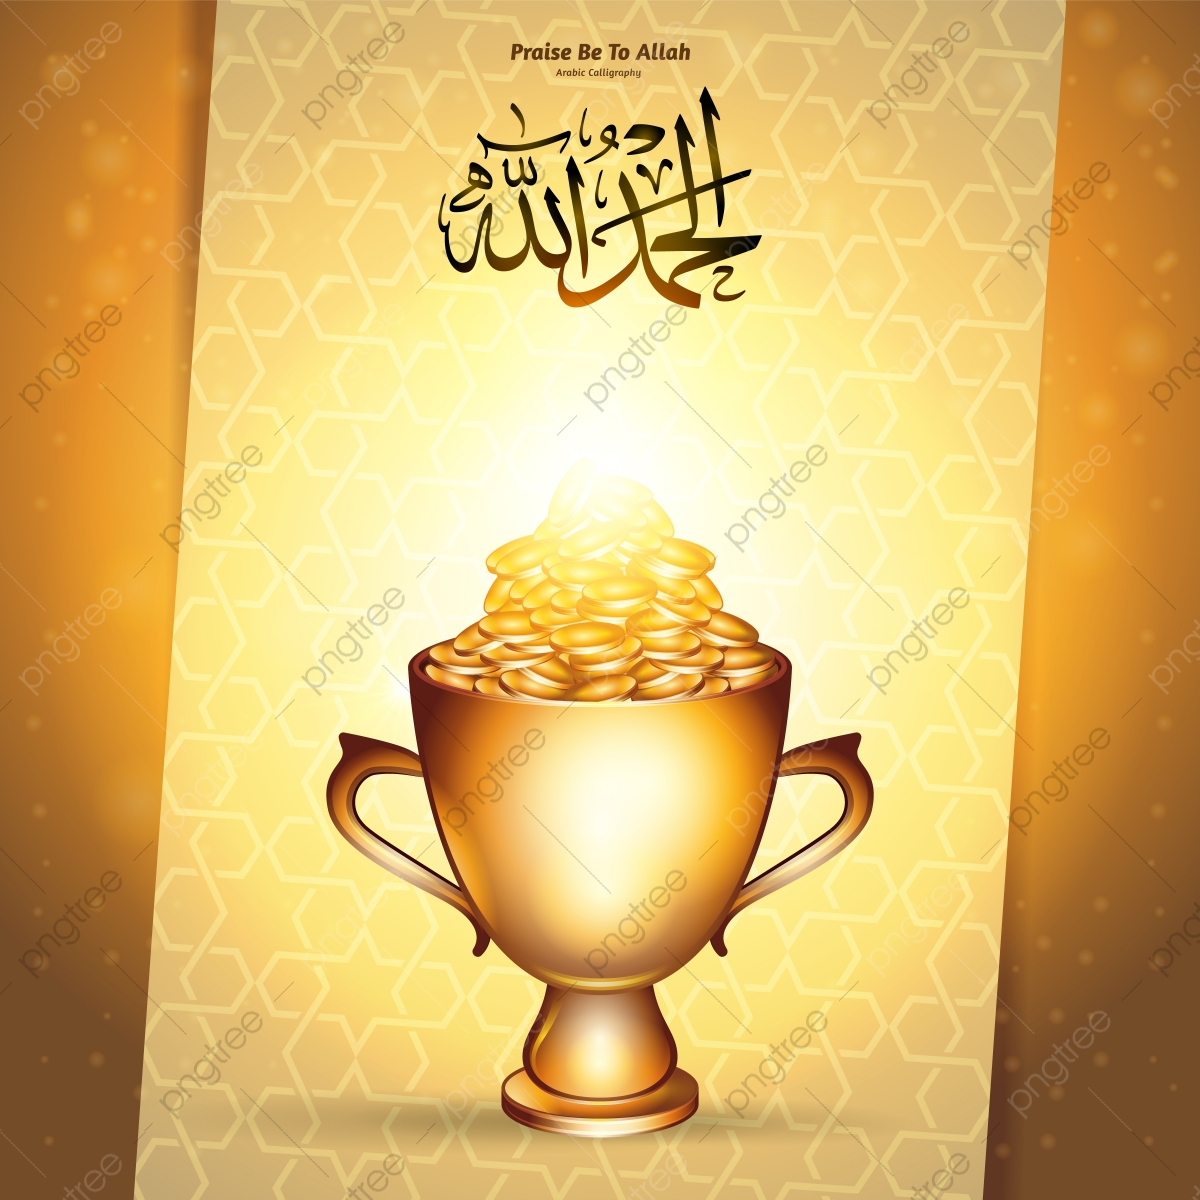 Islamic Reward Concept With Realistic Golden Trophy Full Of